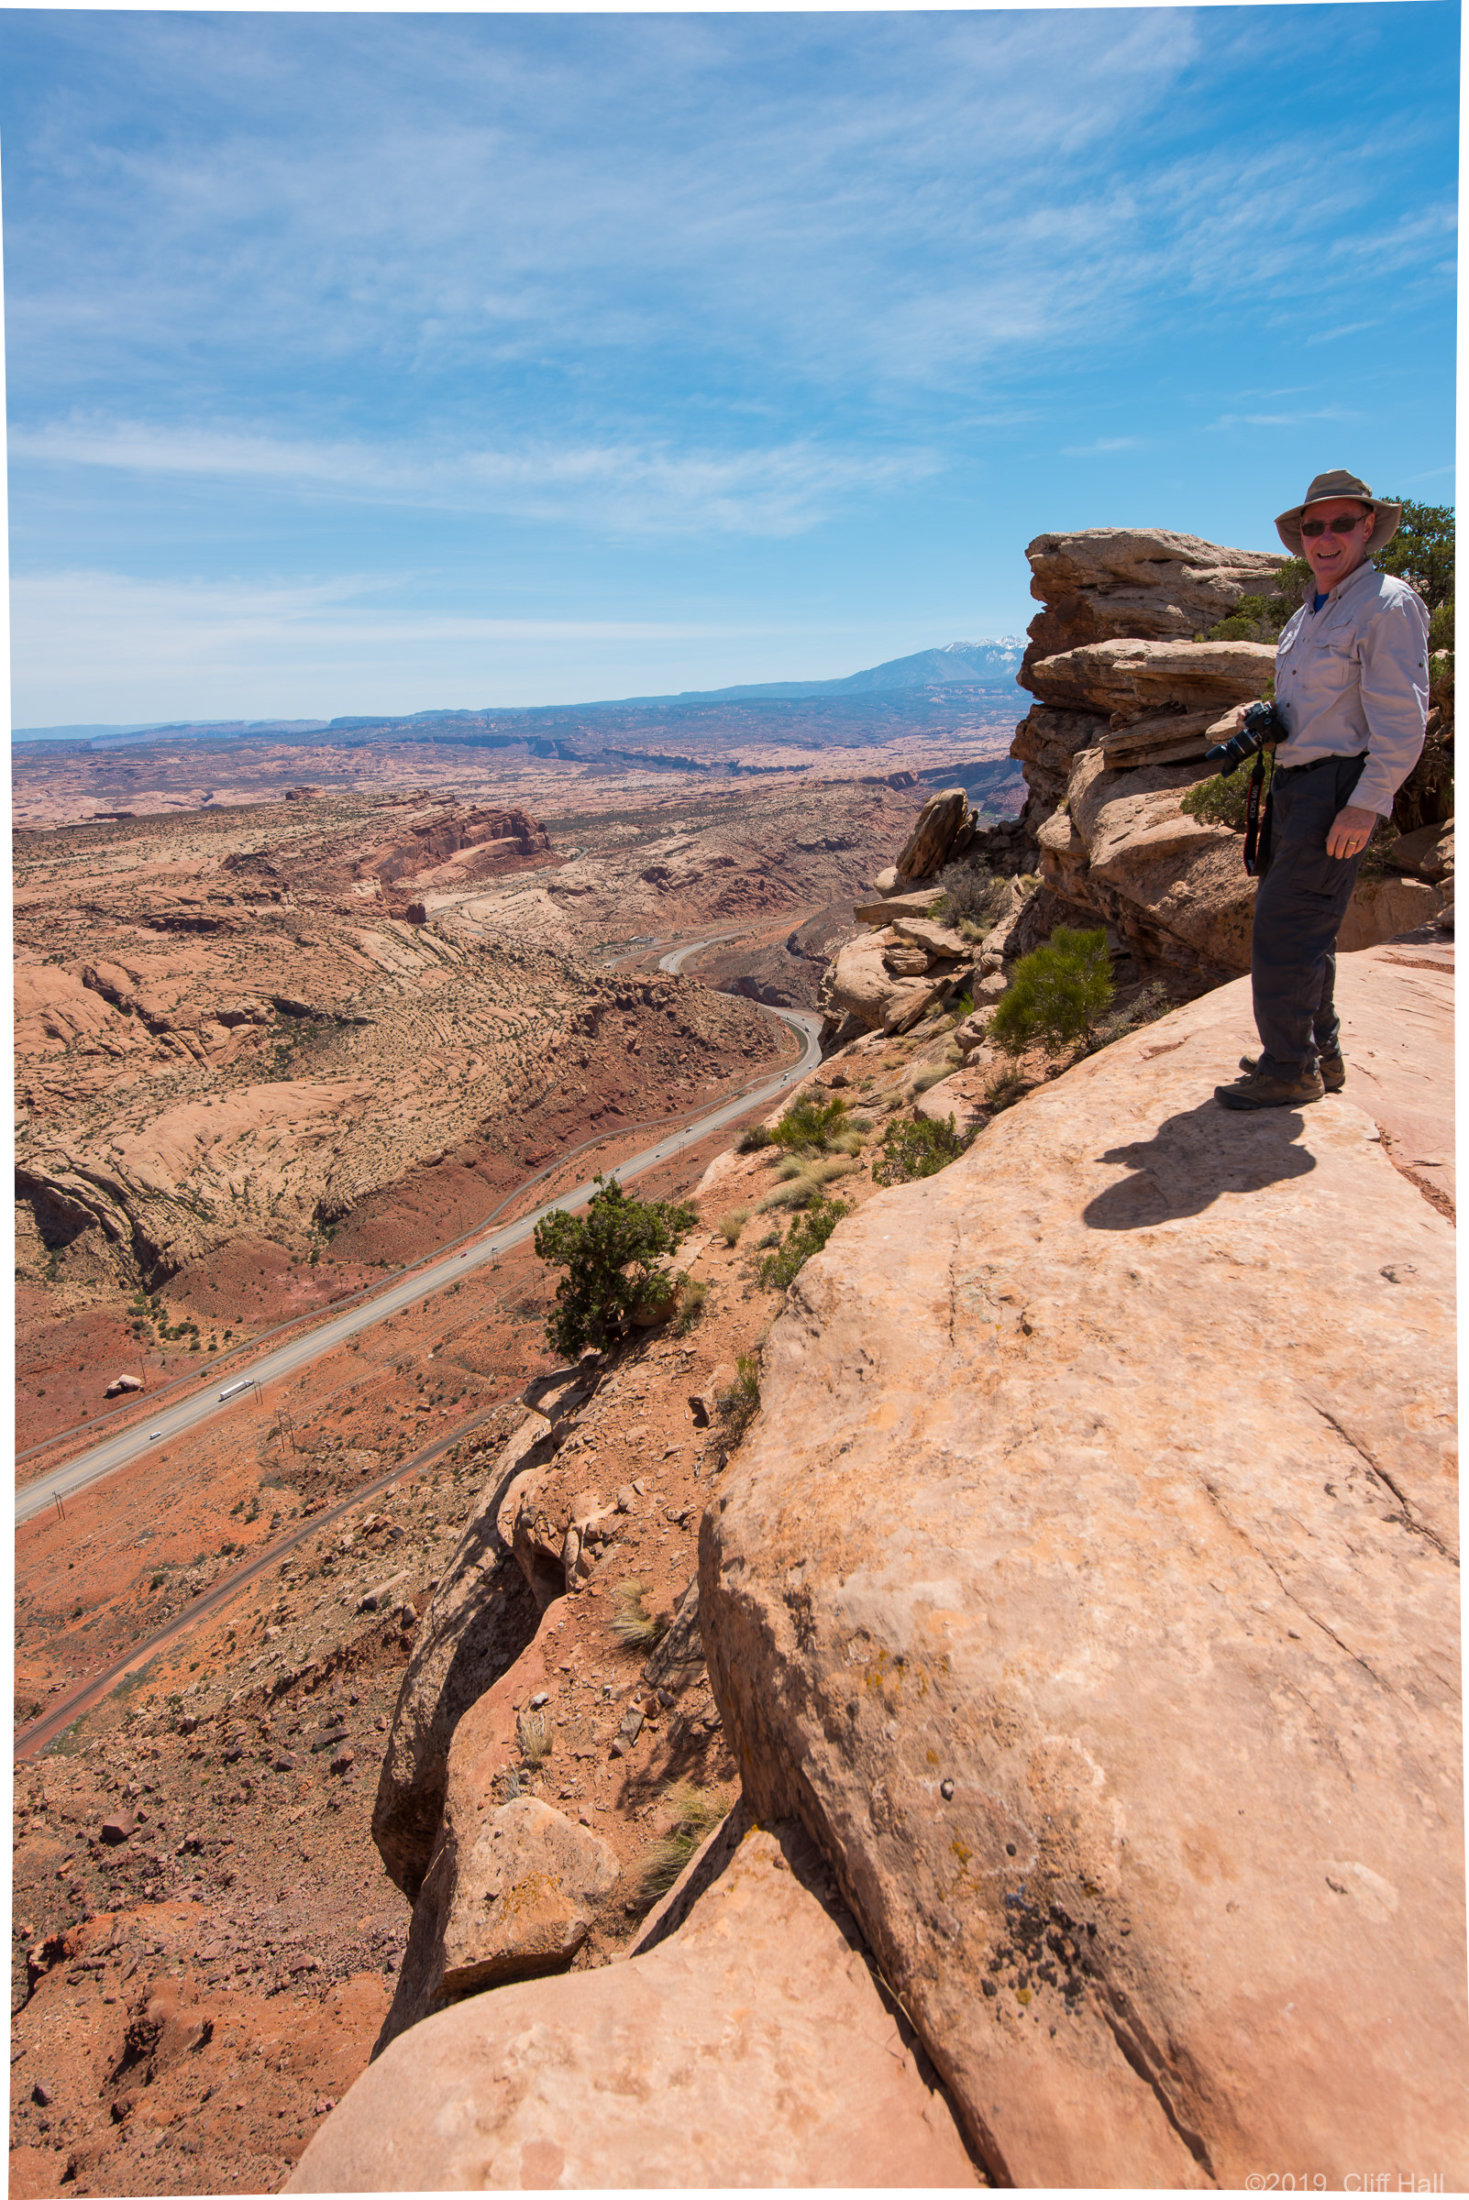 Don at the top of Gold Bar Rim trail